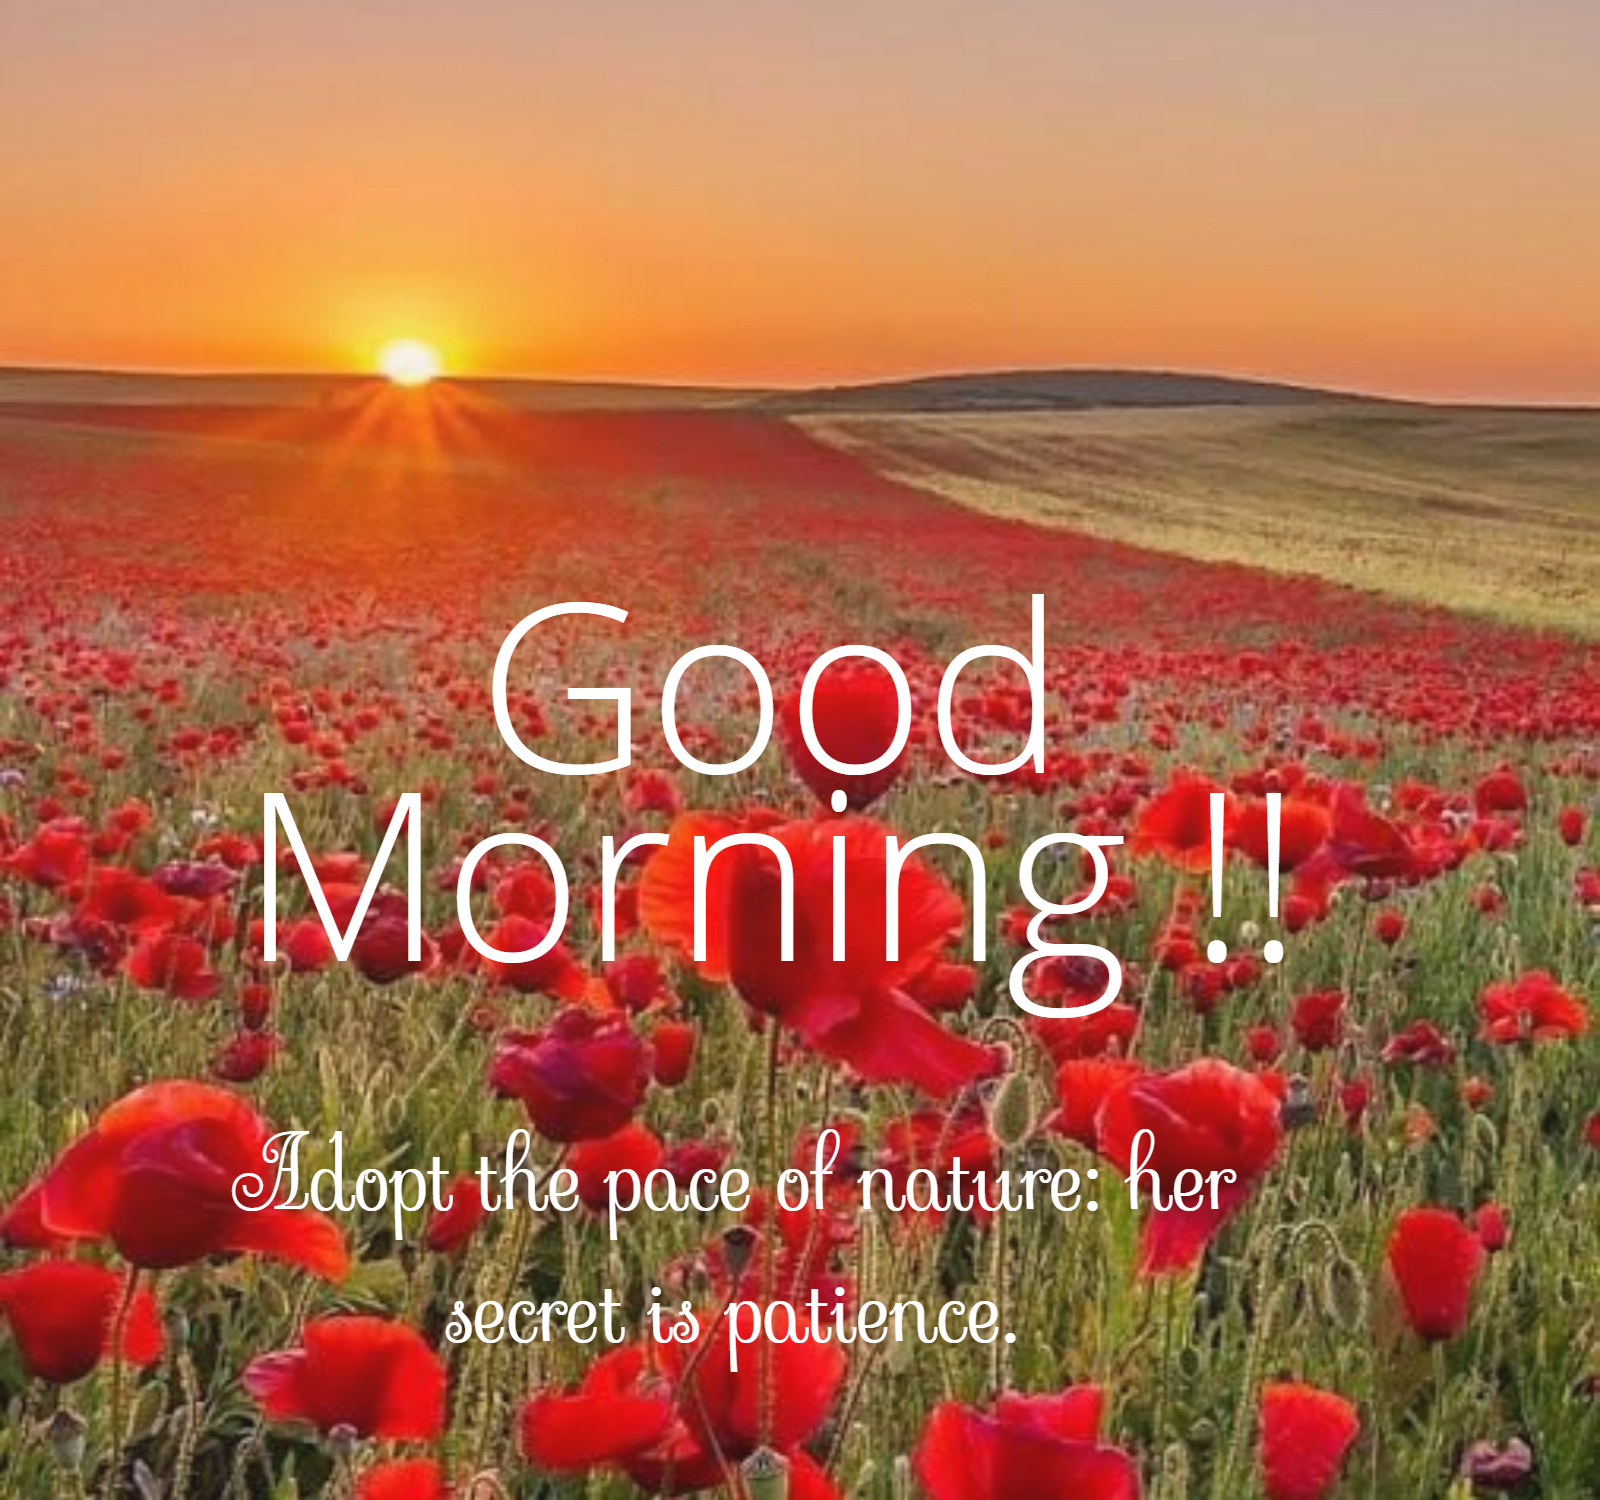 Adopt The Pace Of Nature Her Secret Is Patience Goodmorning Morning Morningquotes Goodmorn In 2020 Good Morning Nature Good Morning Nature Images Morning Images